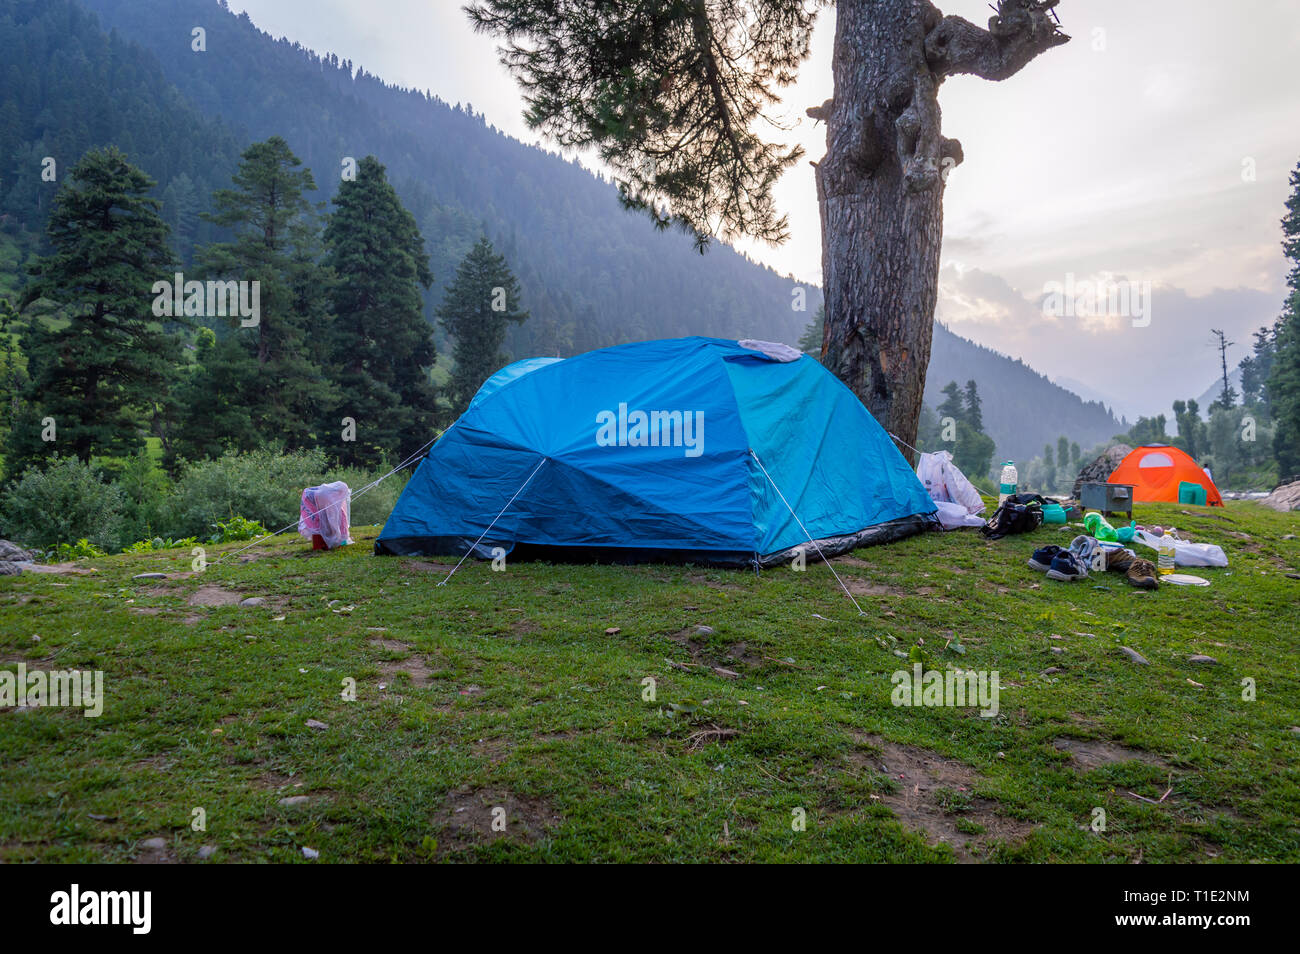 Tents set up for camping in the Himalayan region of Kashmir - Stock Image